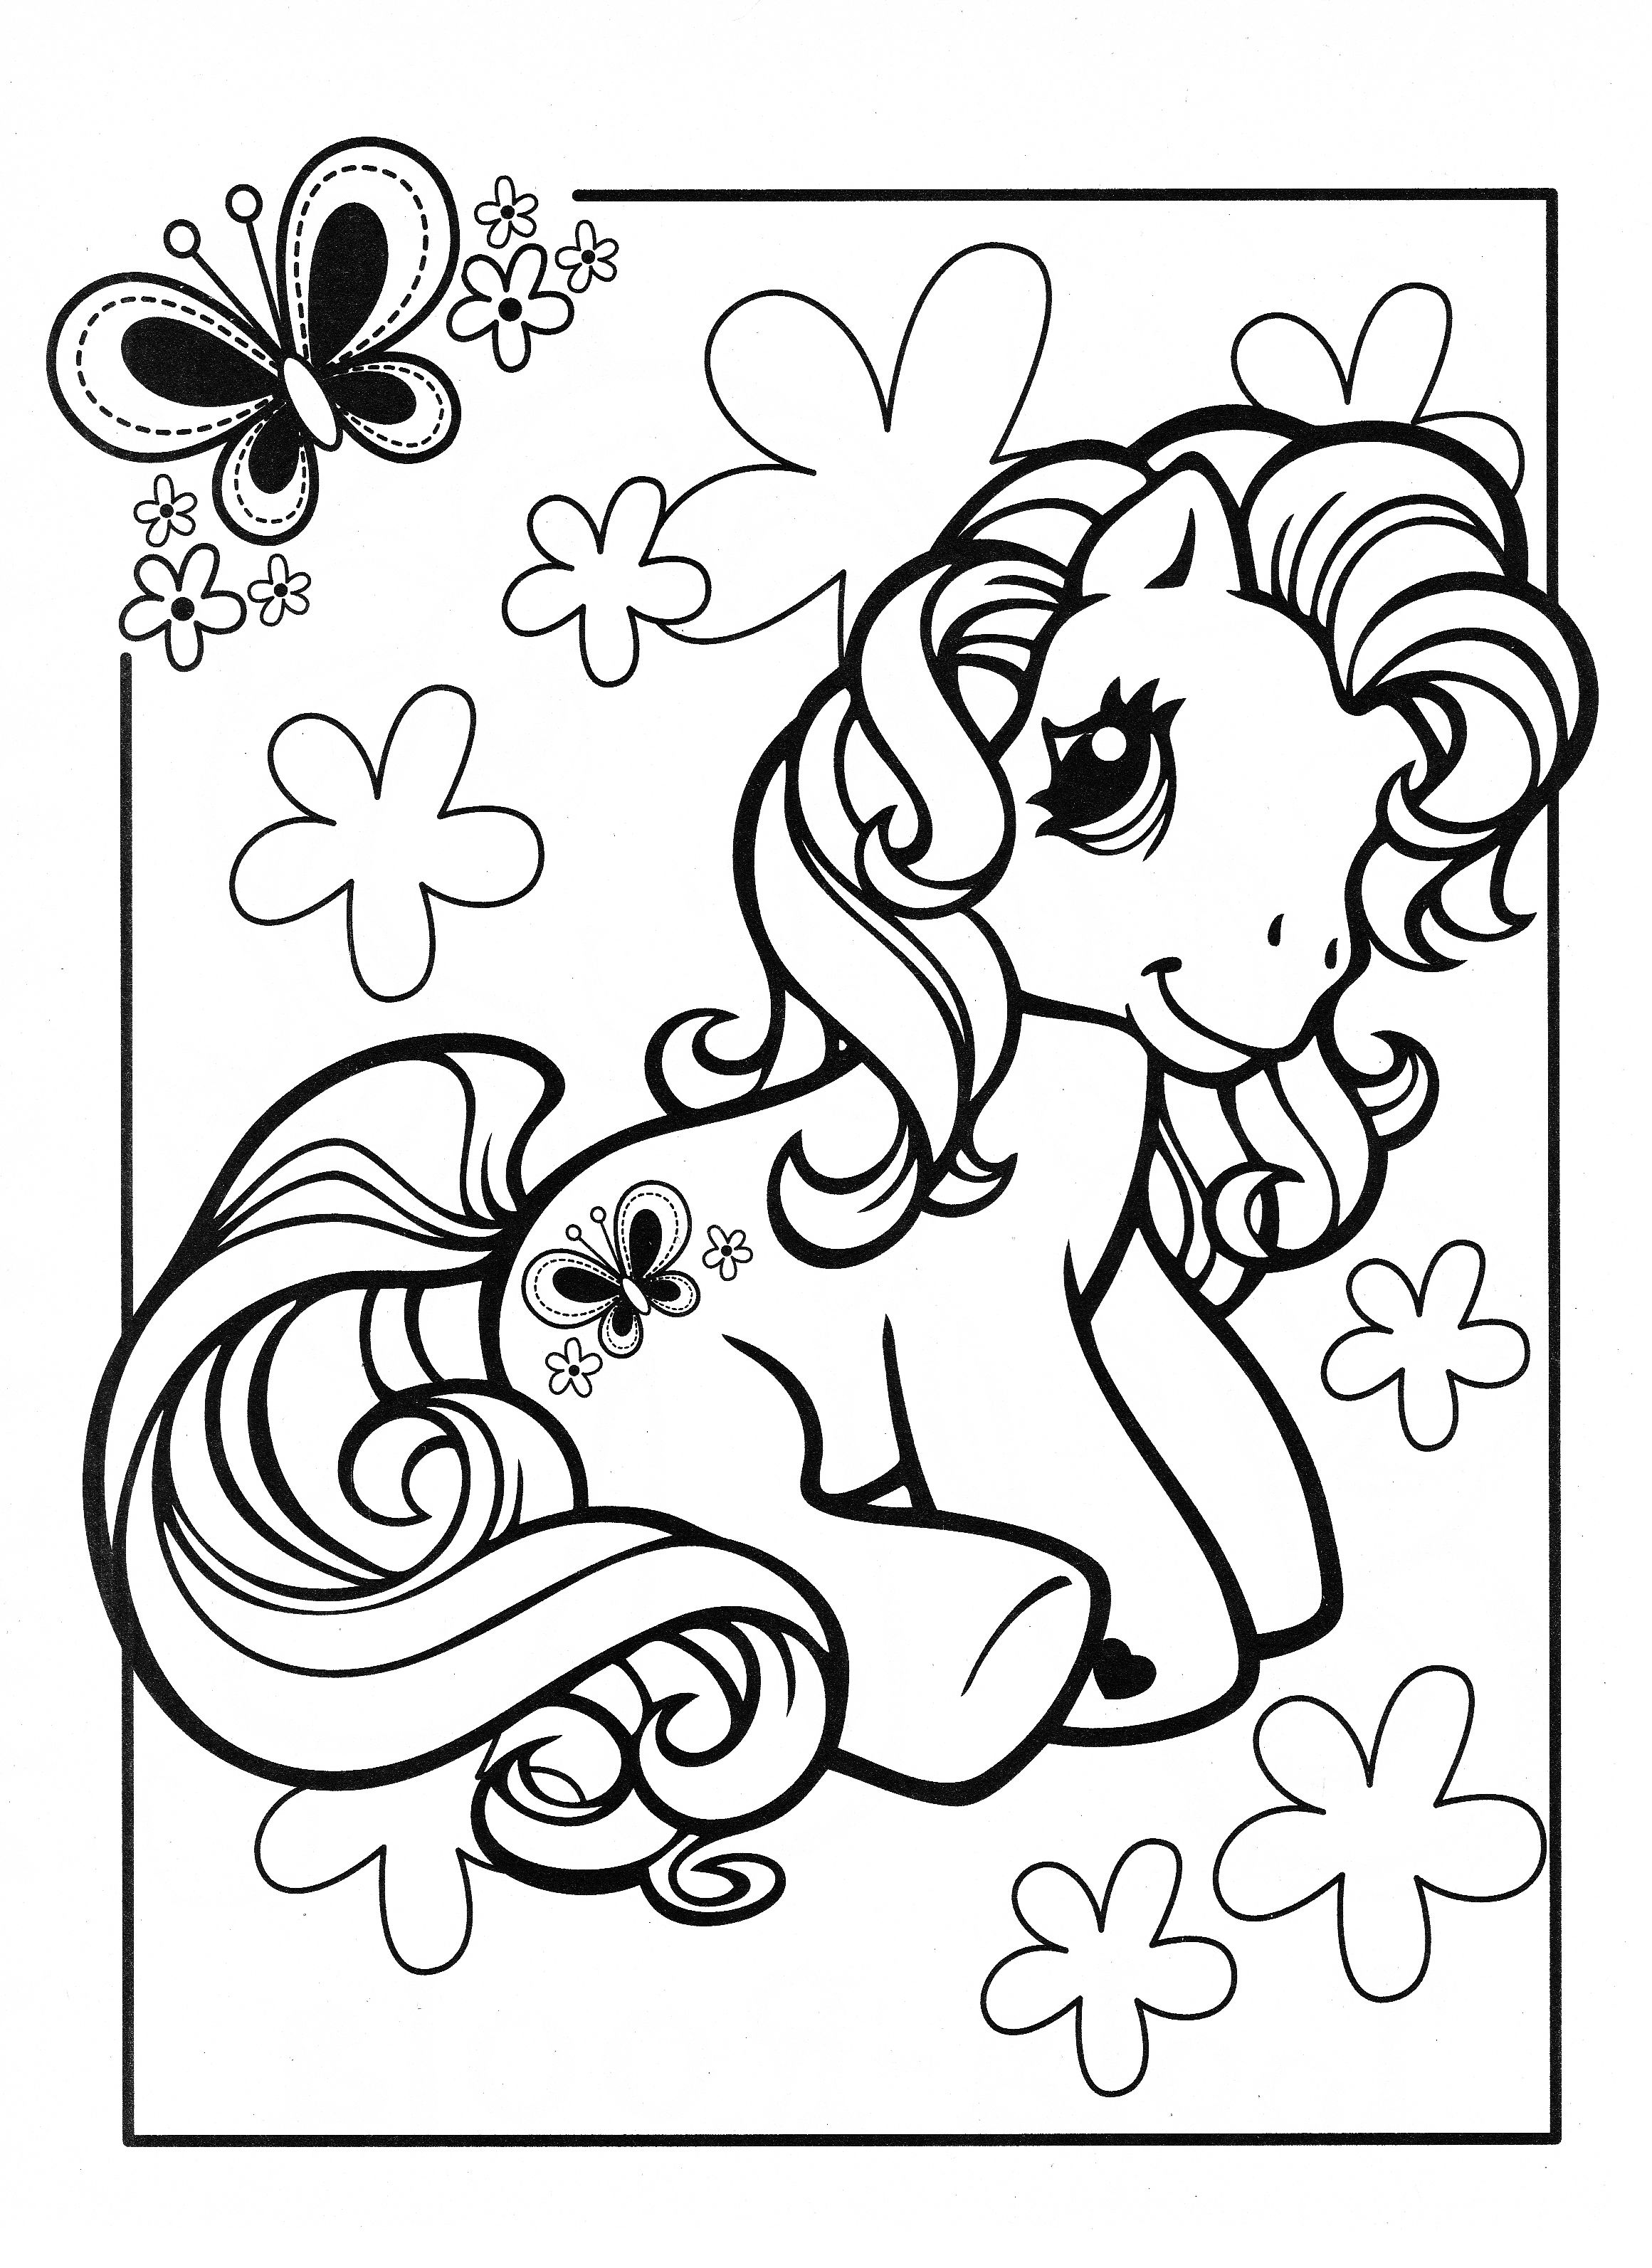 My Little Pony Ausmalbilder Zum Ausdrucken Kostenlos : My Little Pony Coloring Page Mlp Scootaloo Colouring Pinterest